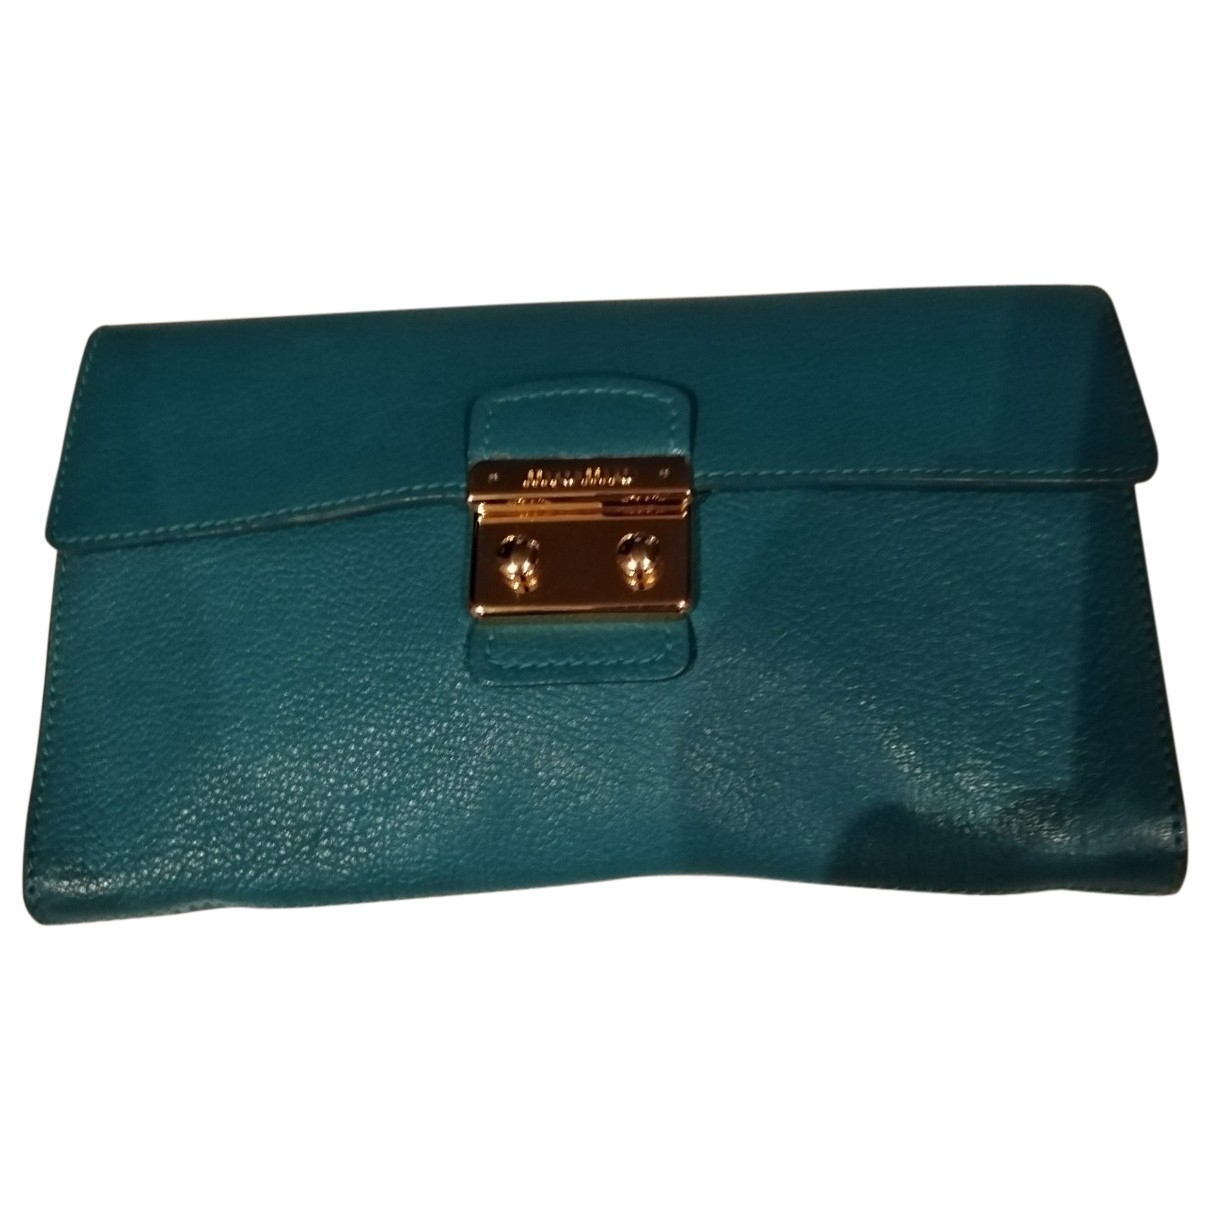 Miu Miu \N Green Leather Clutch bag for Women \N